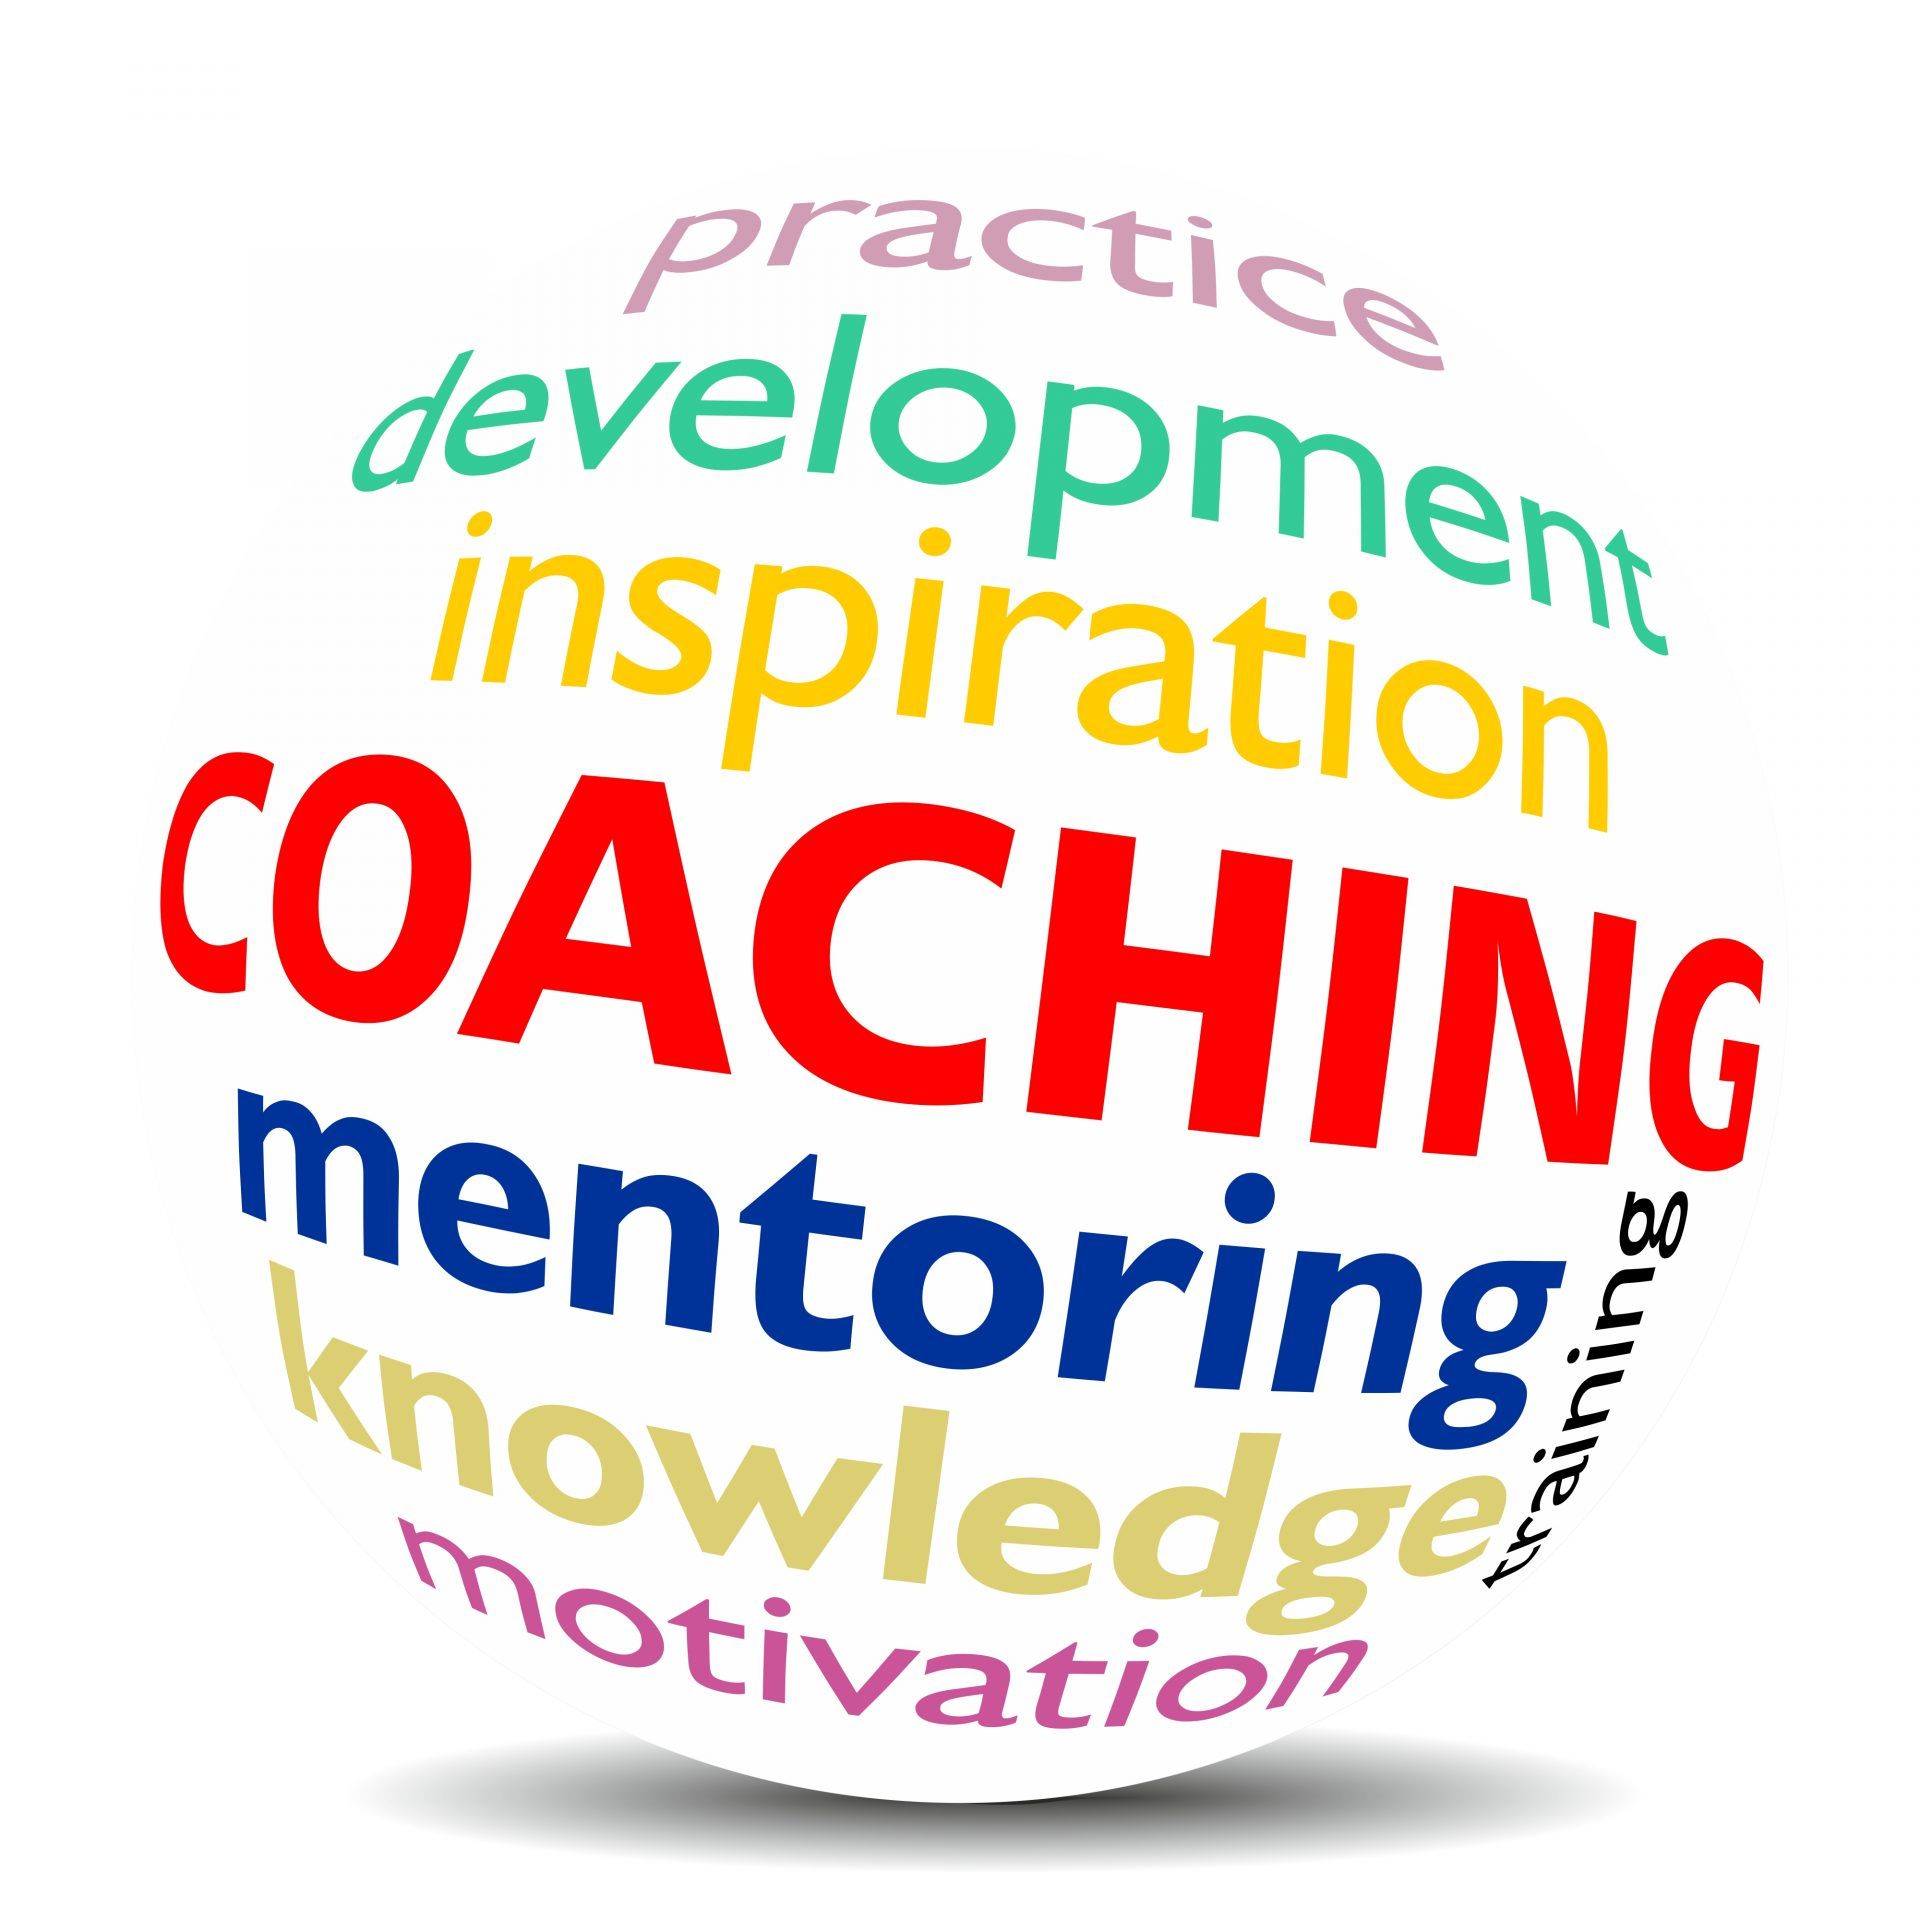 Coaching And Mentoring Course, coaching courses cape town, coaching classes, coaching classes